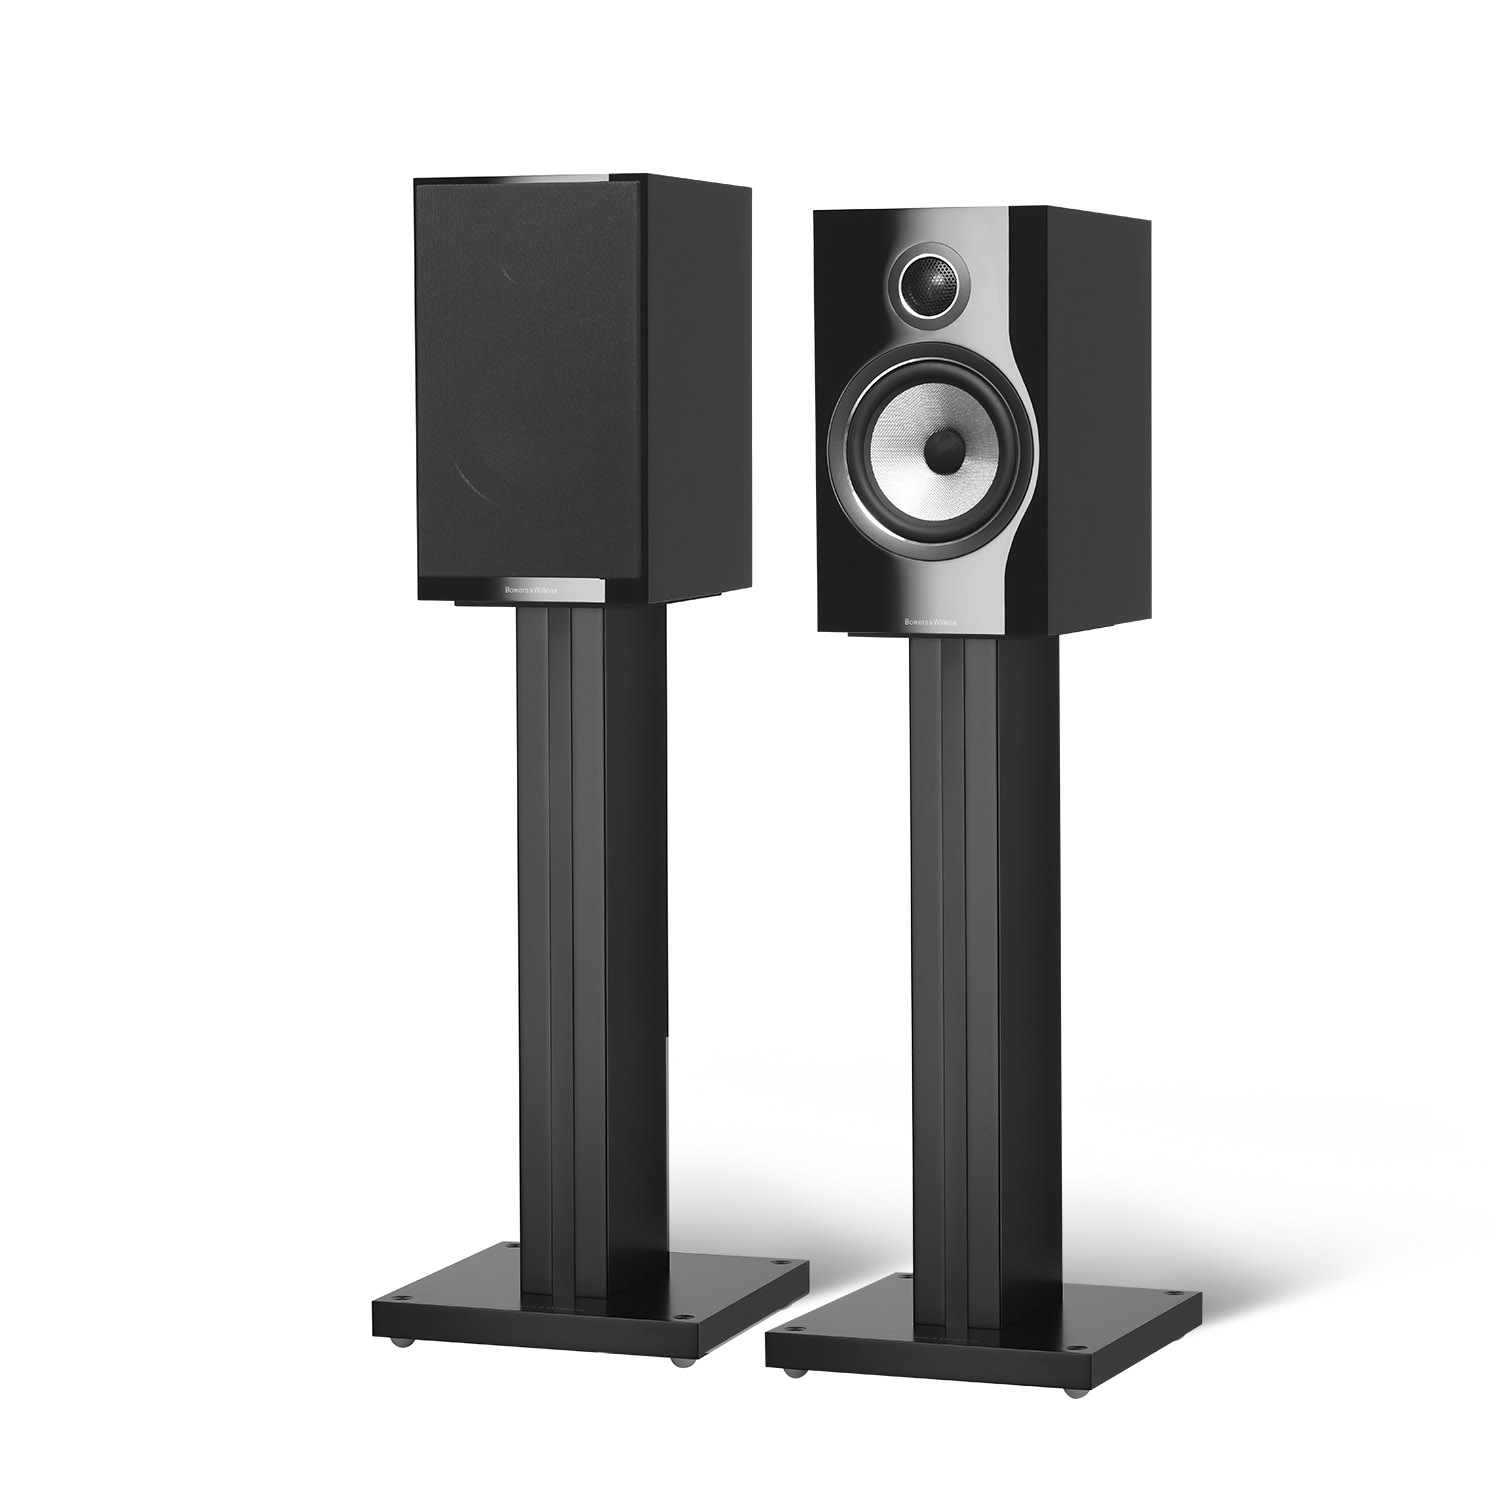 Bowers & Wilkins B&W 706 S2 luidspreker set